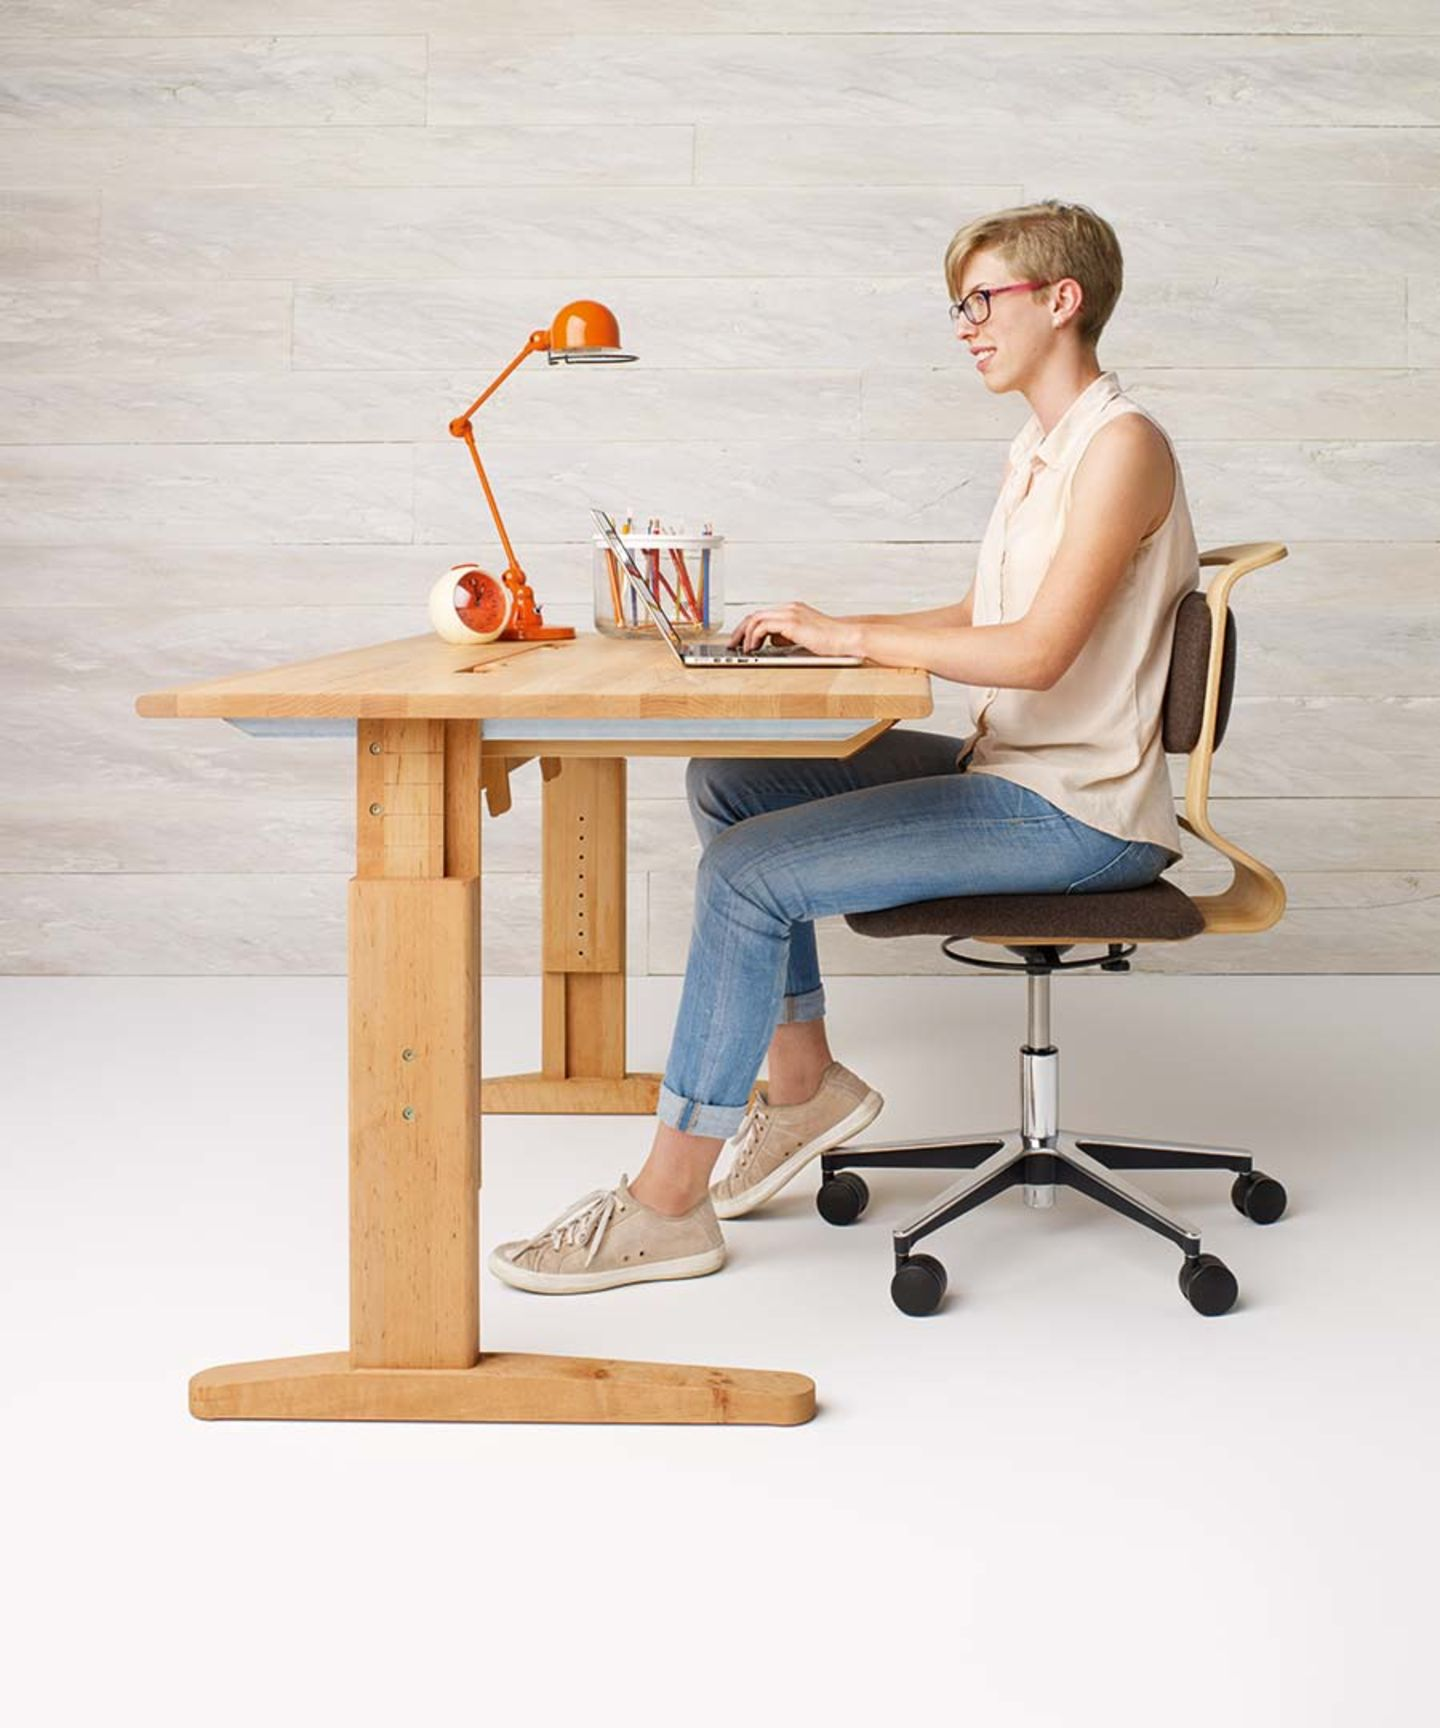 mobile height-adjustable desk made of solid wood